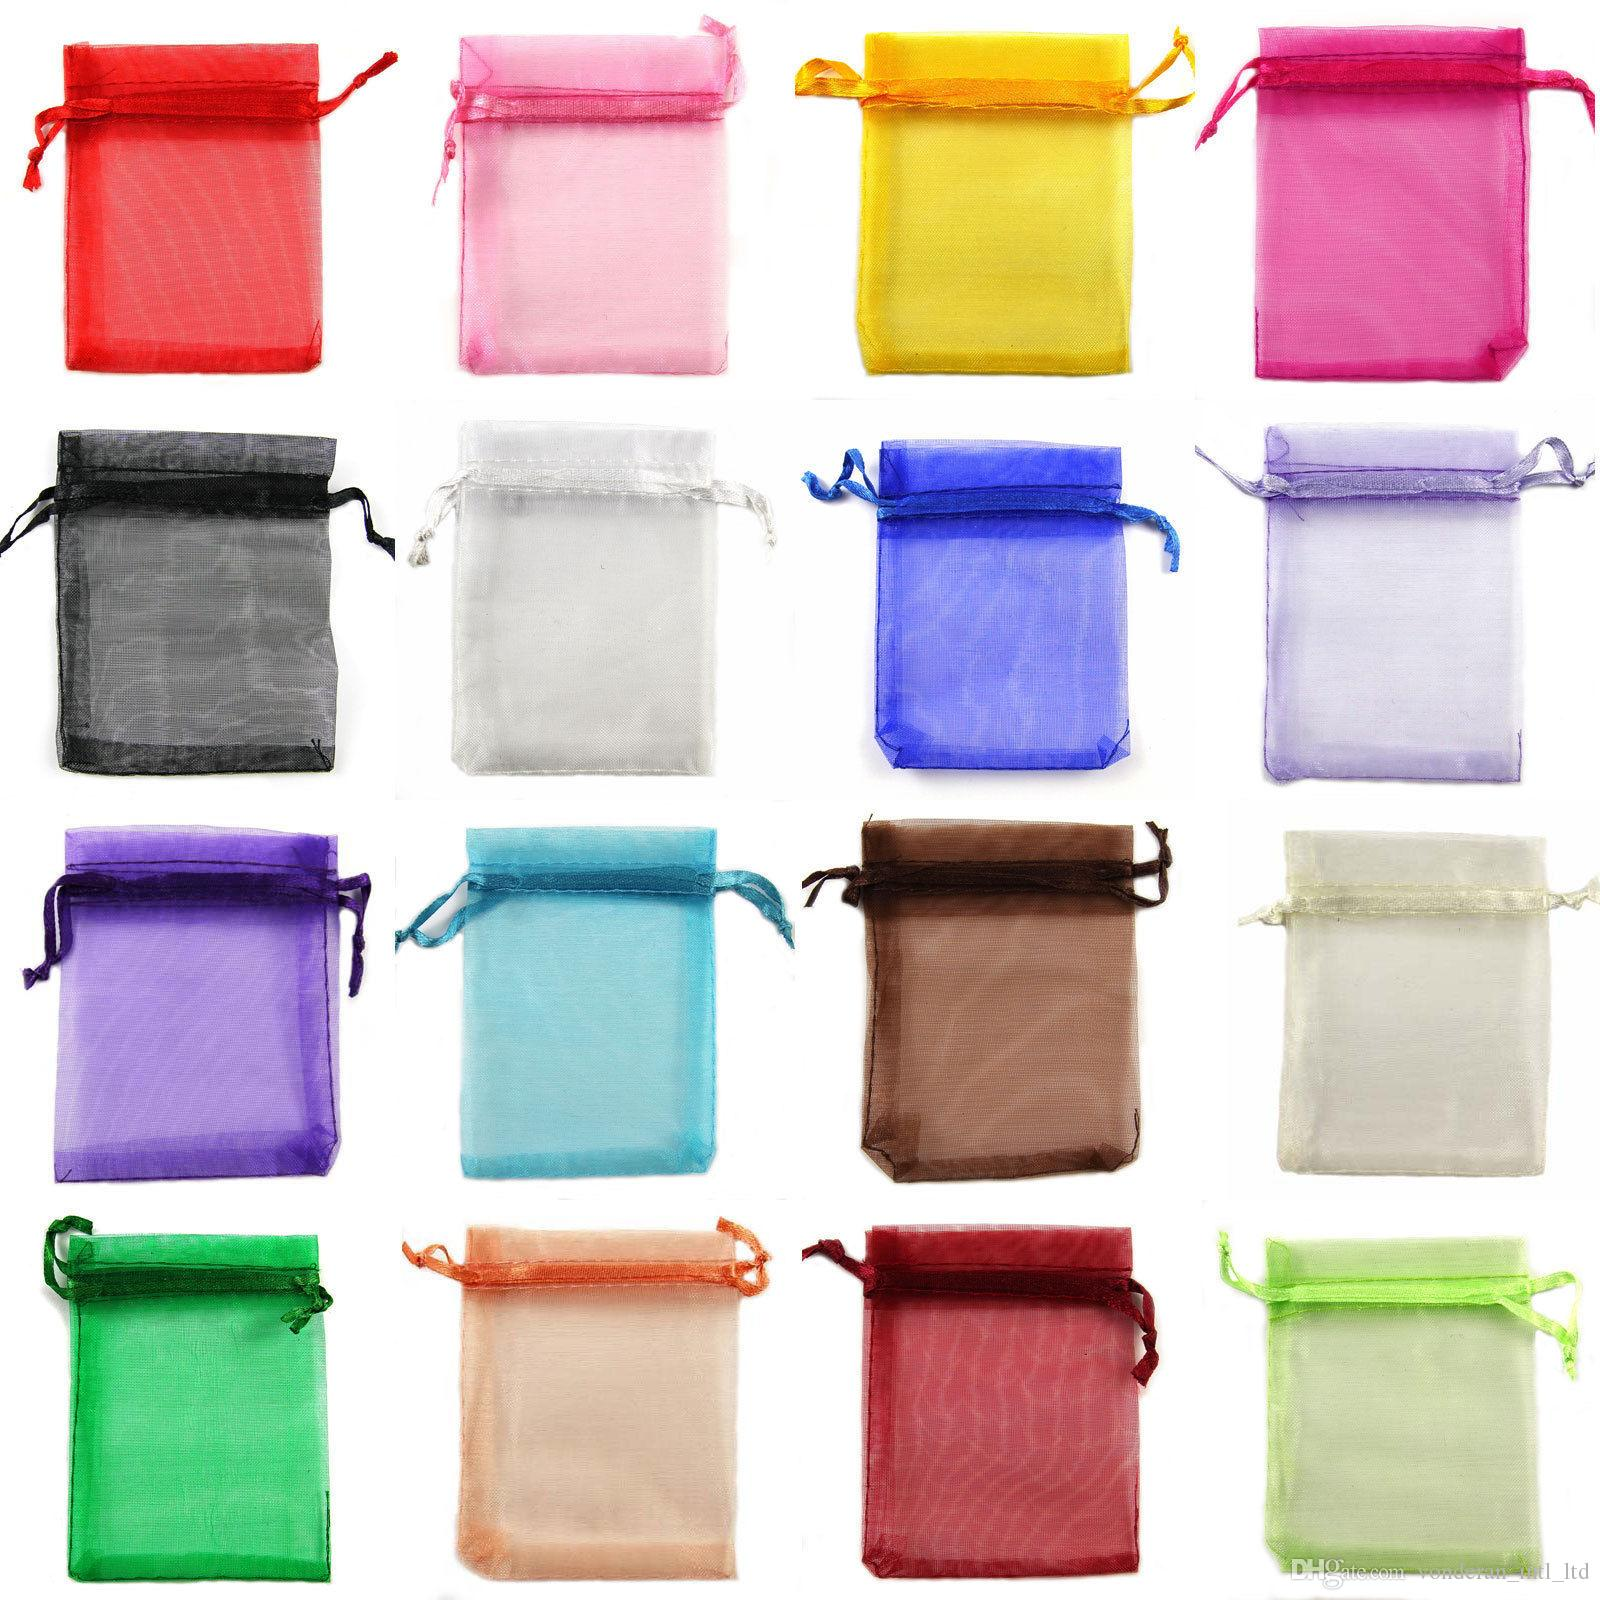 5*7 7*9 9*12 13*18 15*20cm Drawstring Organza Bags Gift Wrapping Bag ...